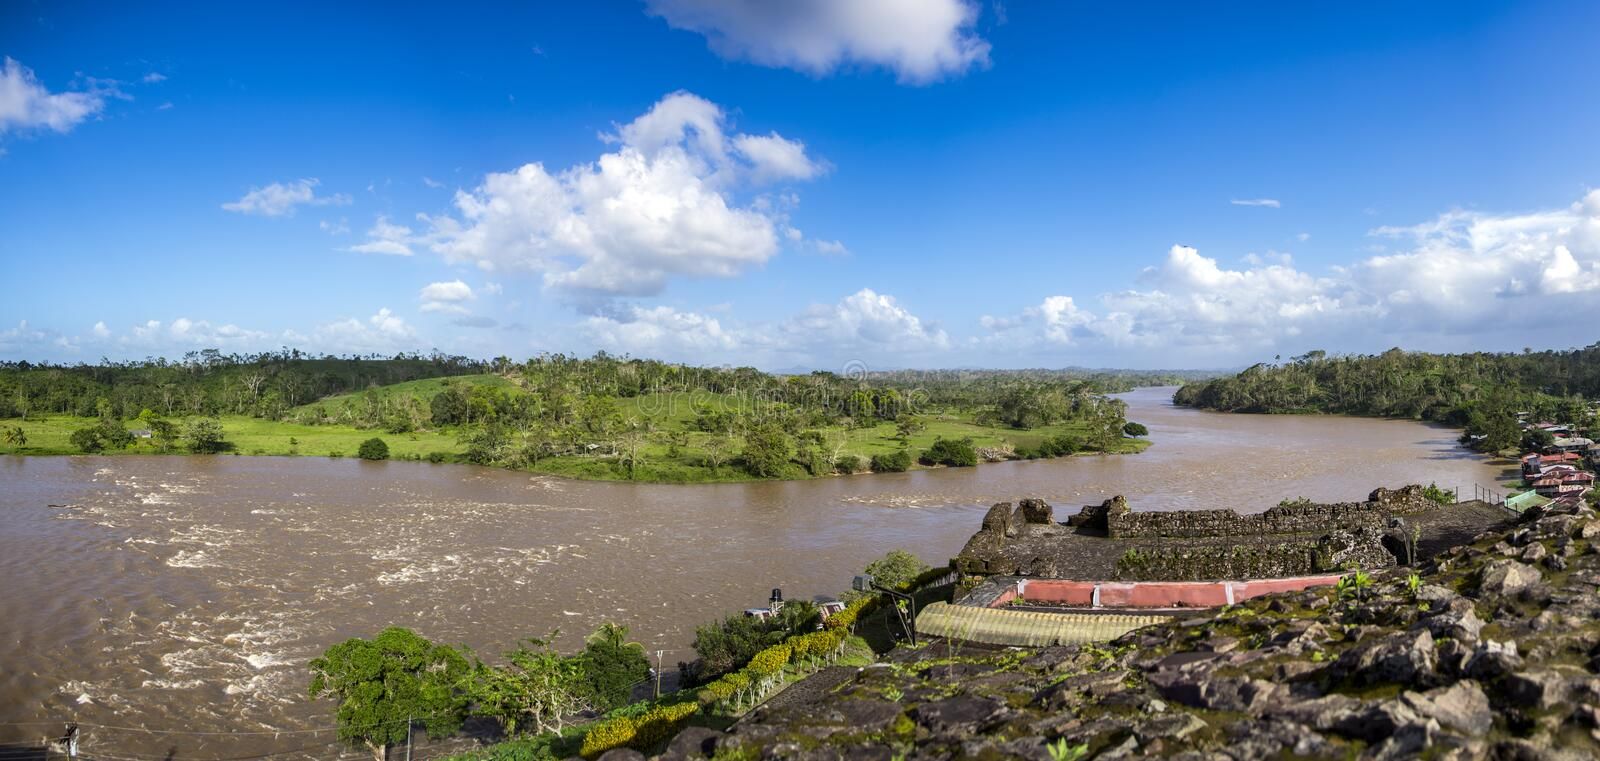 View of the Rio San Juan, from the old Spanish Fortress, Village of El Castillo, Rio San Juan, Nicaragua. El Castillo is a municipality located on the Río San royalty free stock photo